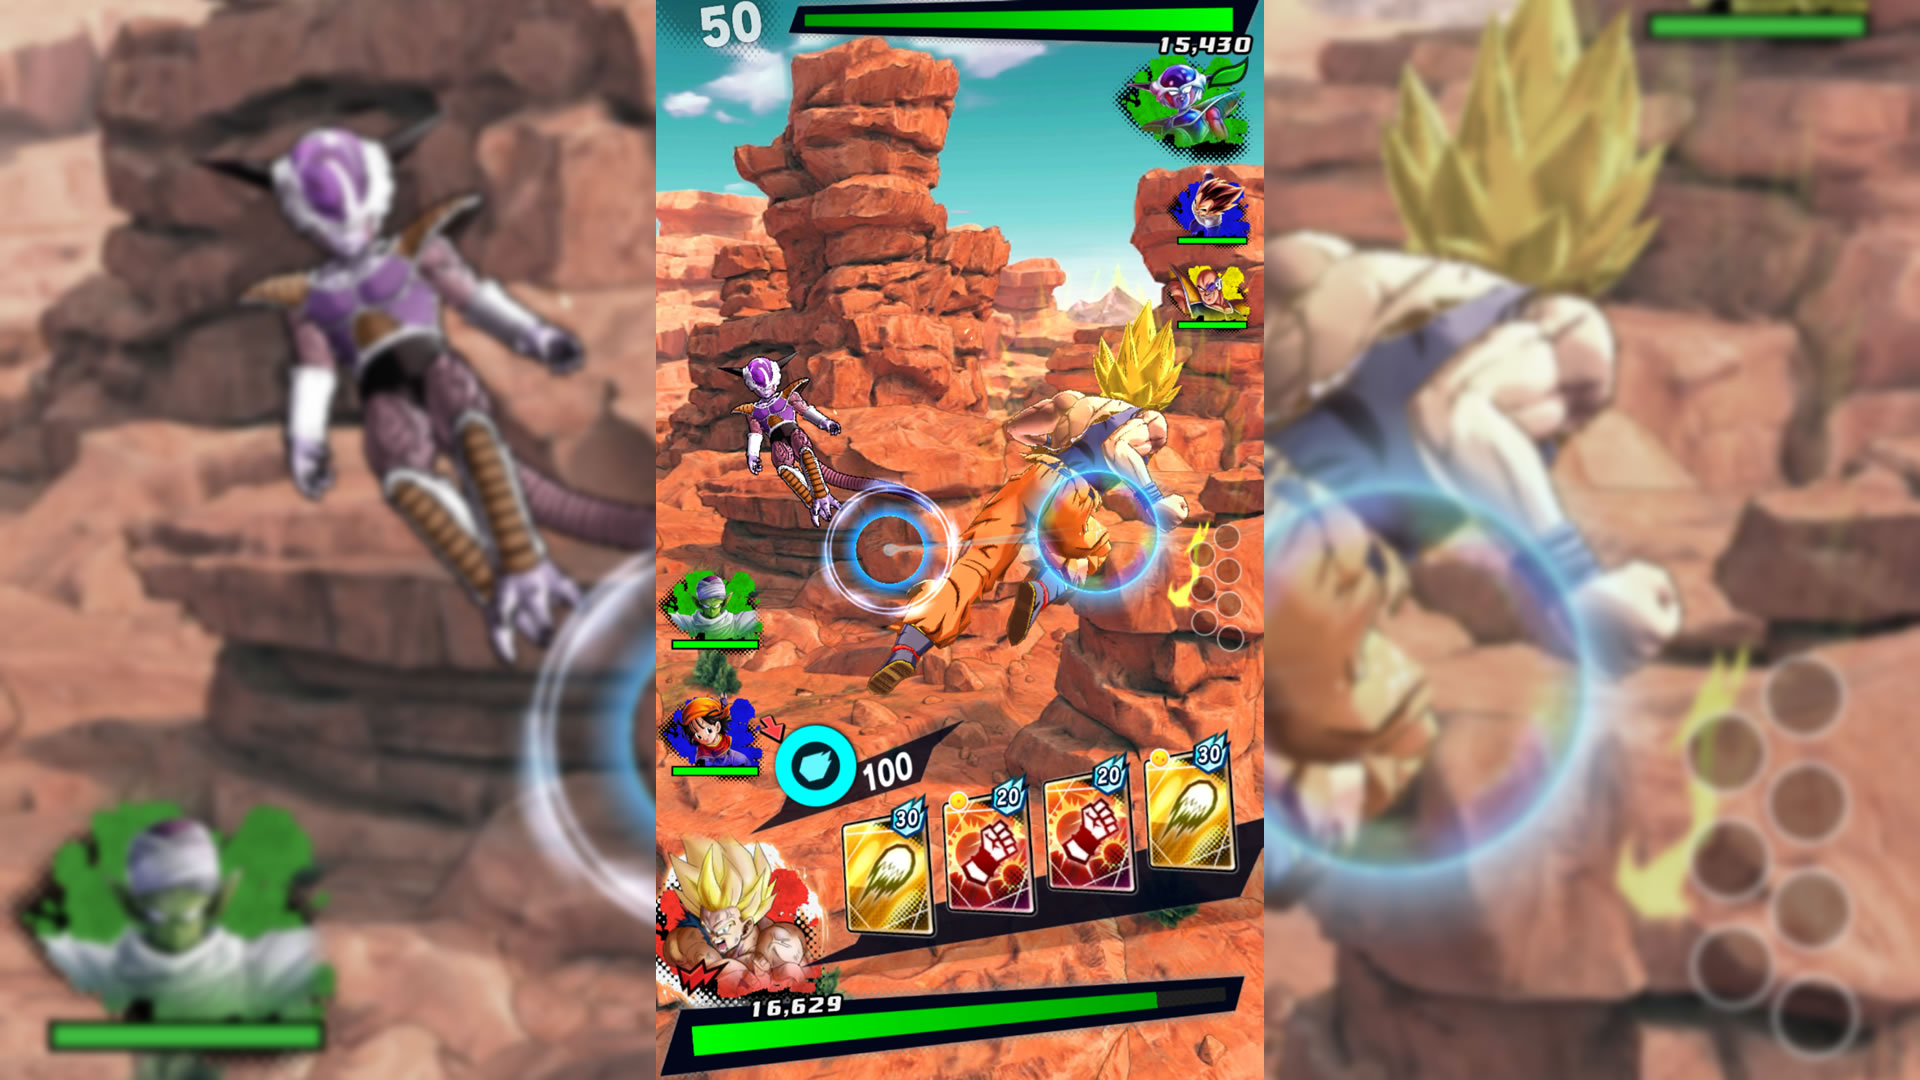 Gdc 2018 dragon ball legends interview goku on the go shacknews from what i gathered during my hands on time with dragon ball legends its a game all about strategy and timing making sure i had the right combo of moves voltagebd Image collections